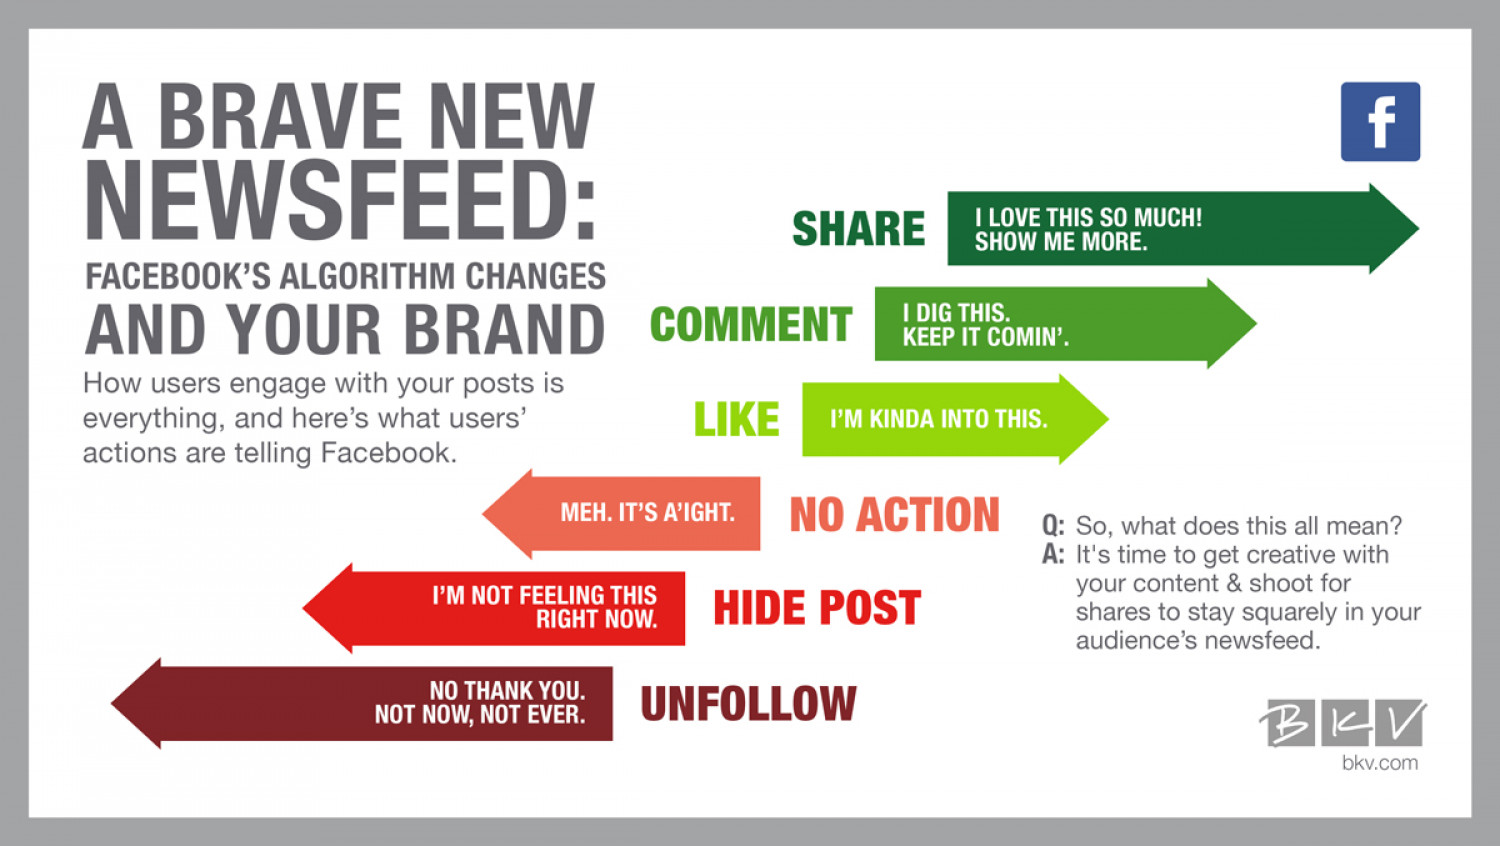 Facebook's Algorithm Updates vs. Your Brand Infographic